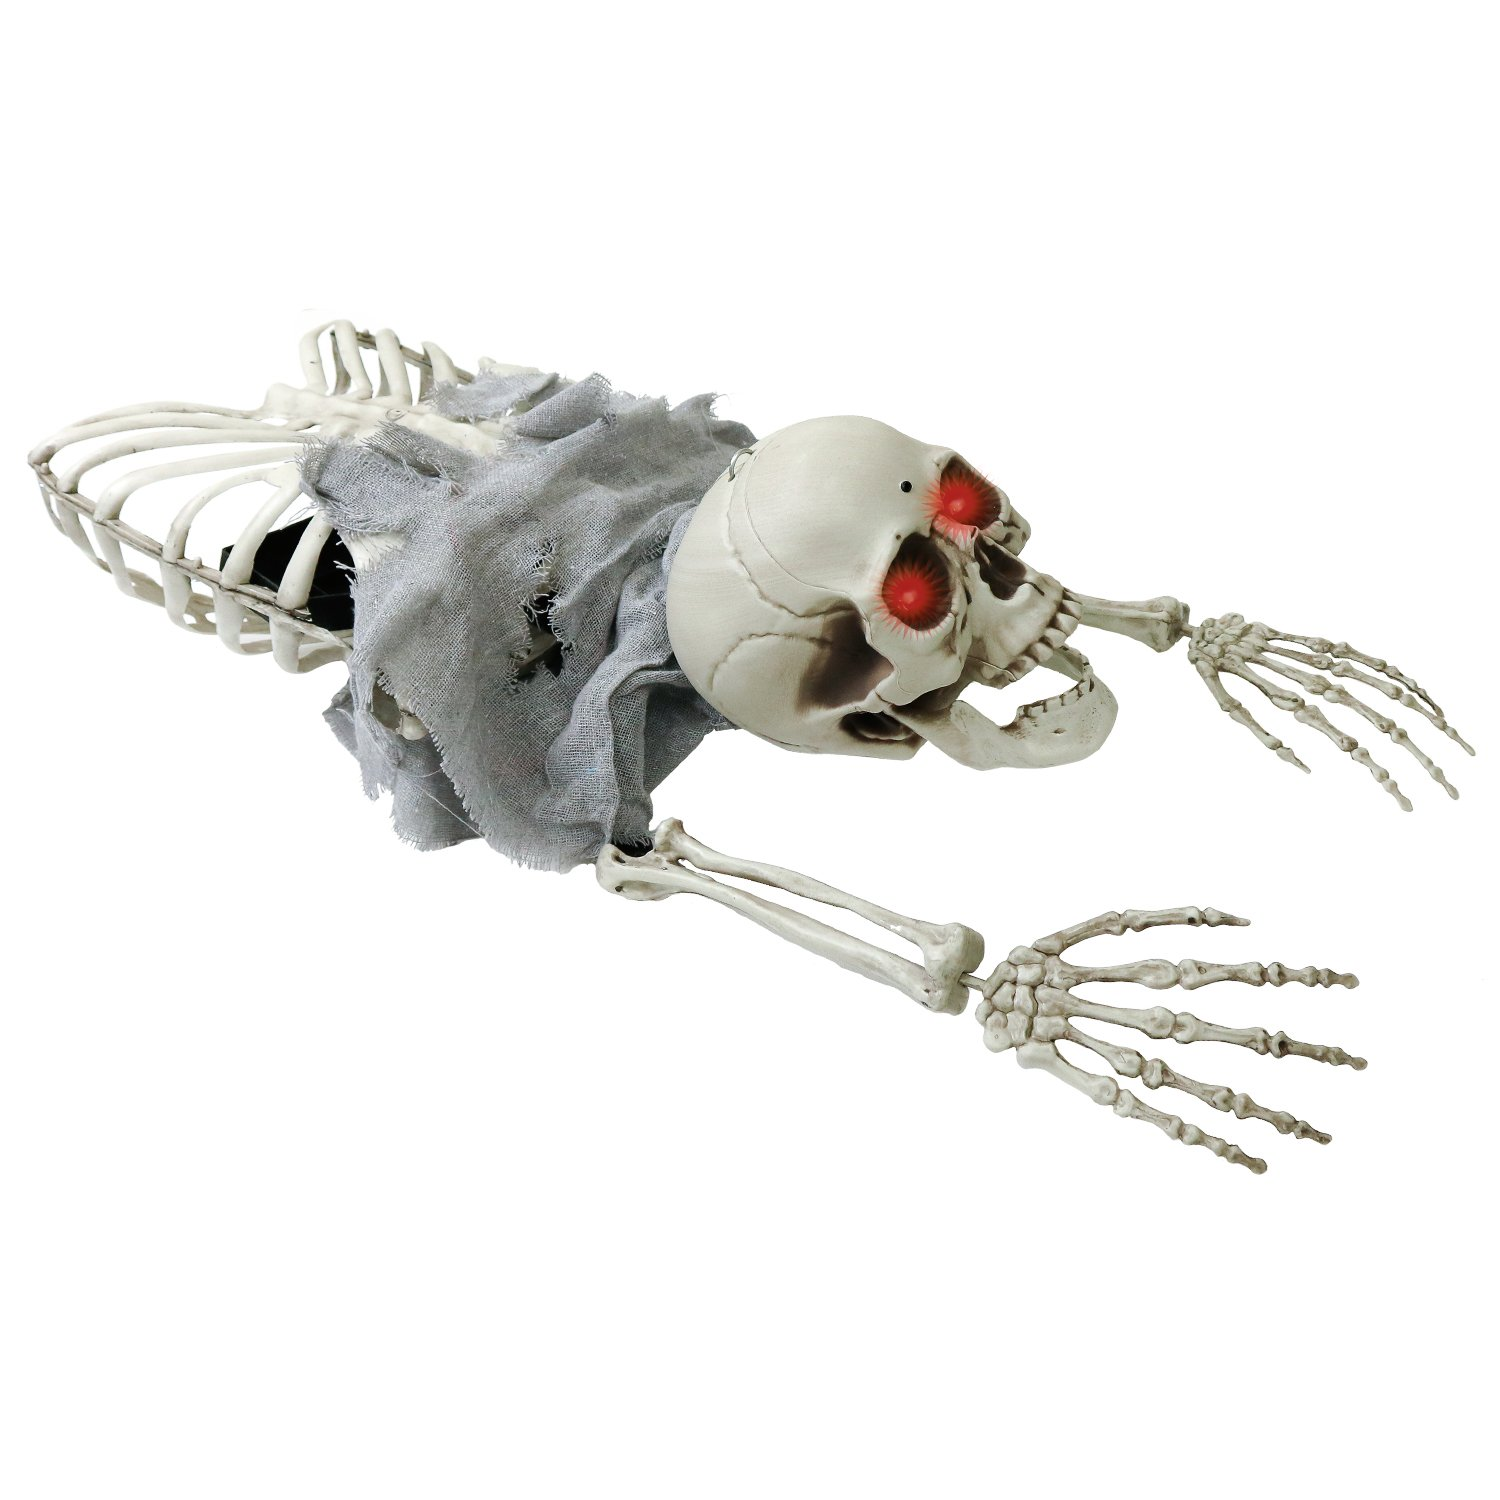 Halloween Haunters Animated Crawling Skeleton Pirate Prisoner Groundbreaker Graveyard Prop Decoration Light Up Eyes, Chains & Shackles